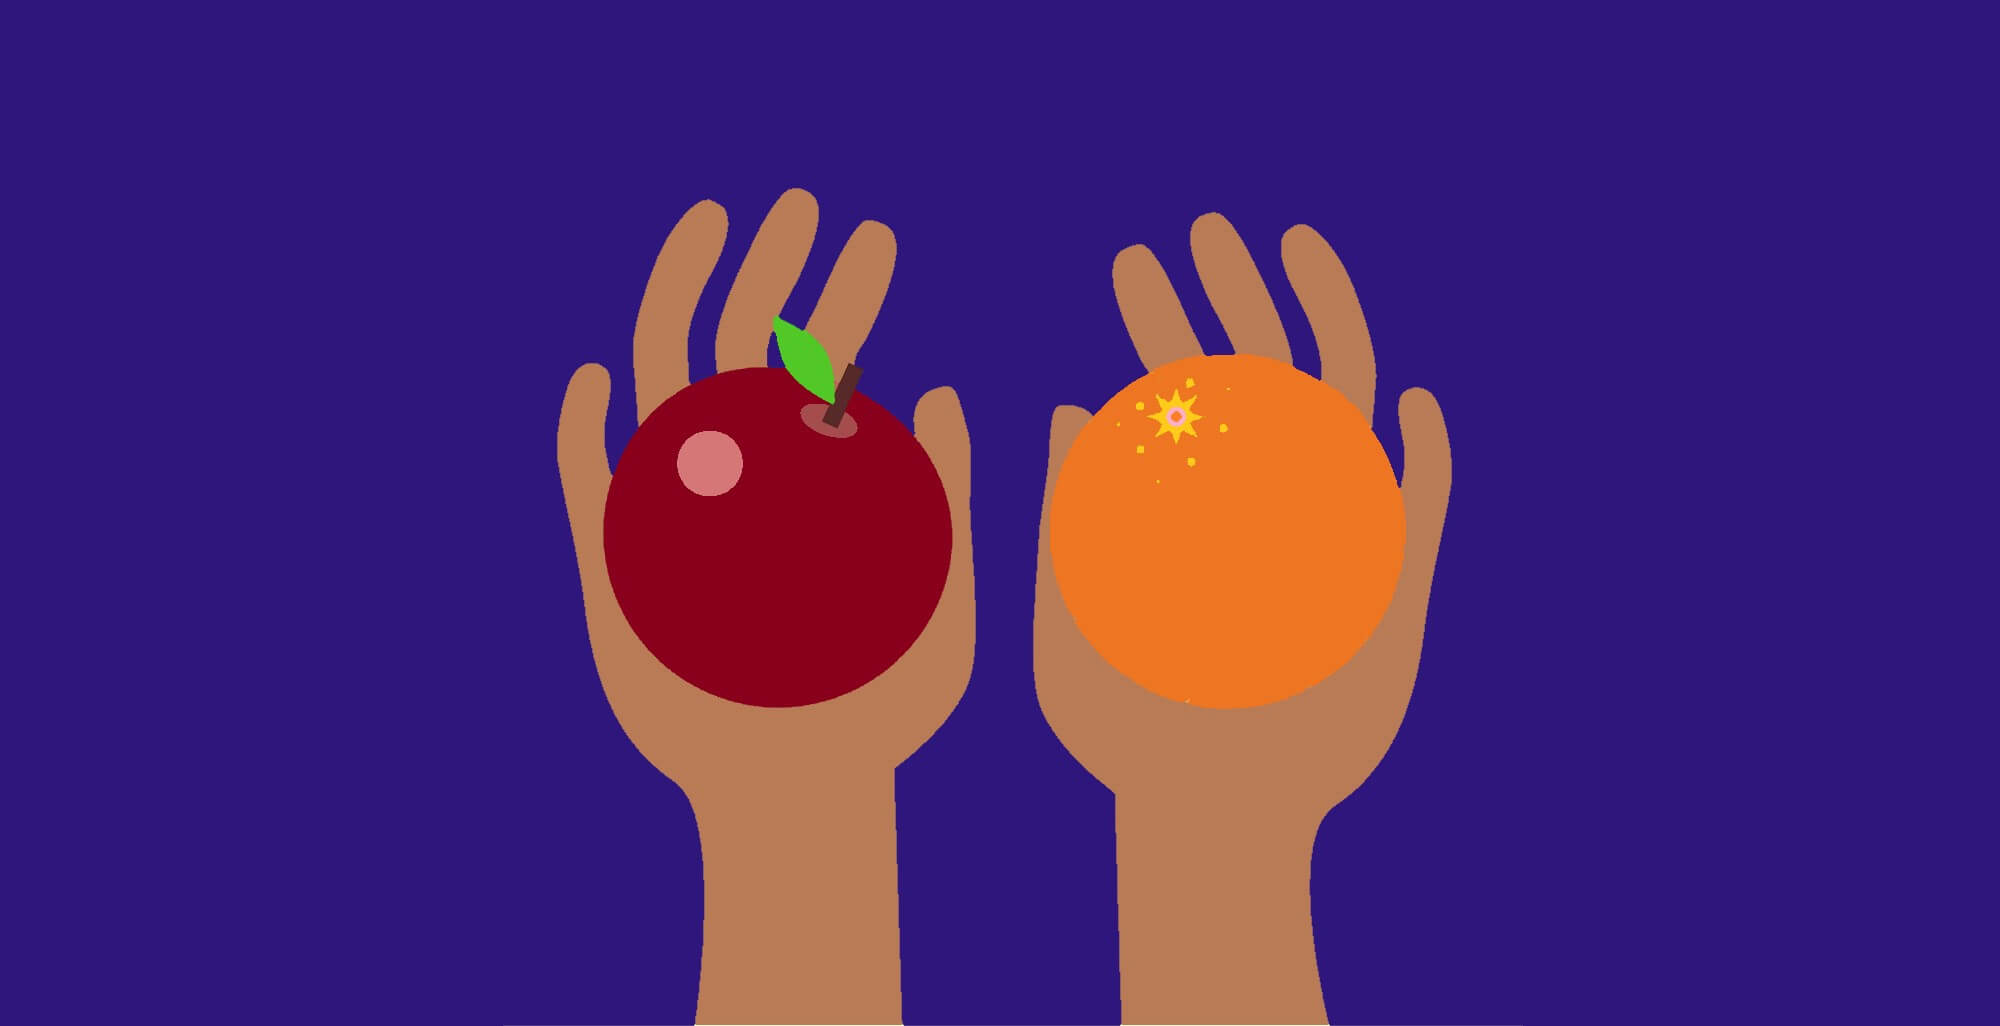 Illustration representing personal loans verse payday loans, represented by two hands holding an apple and an orange.